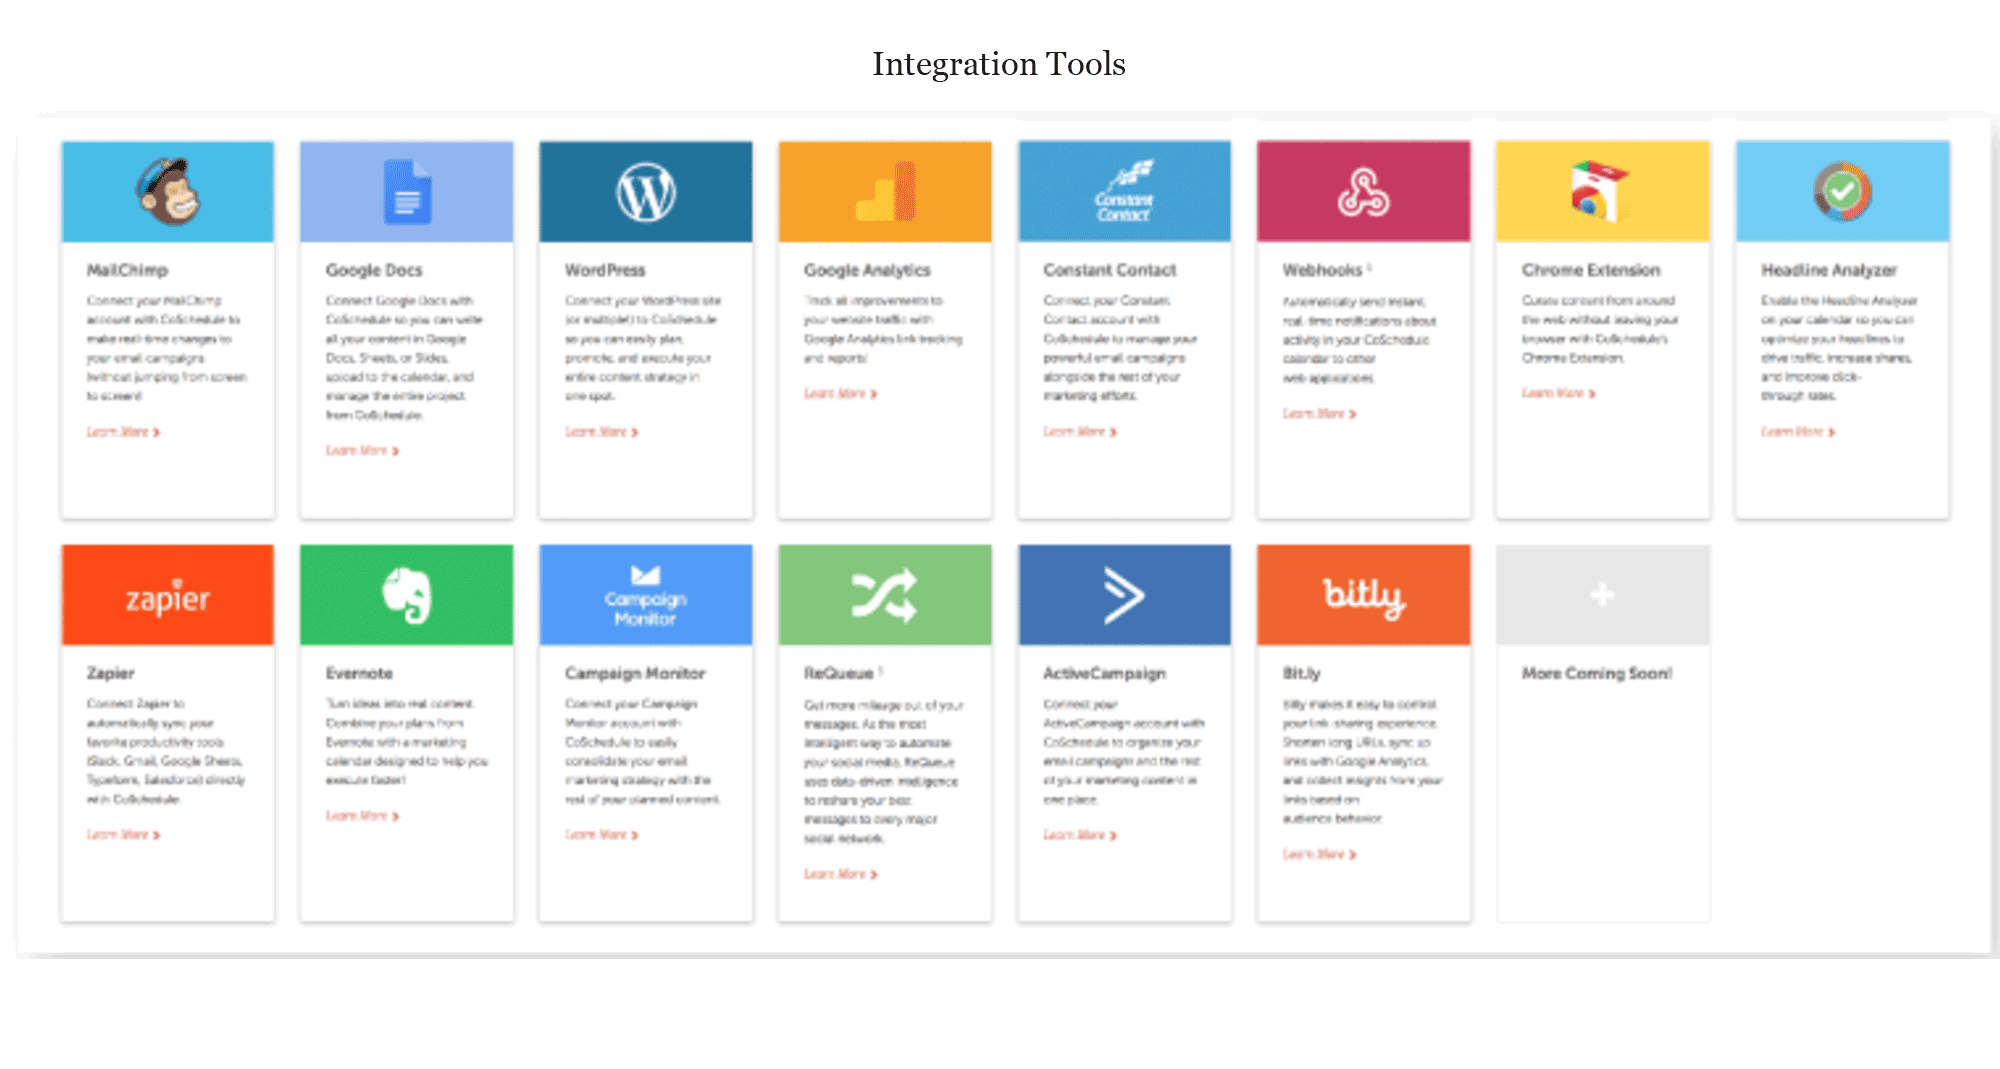 CoSchedule Integrations